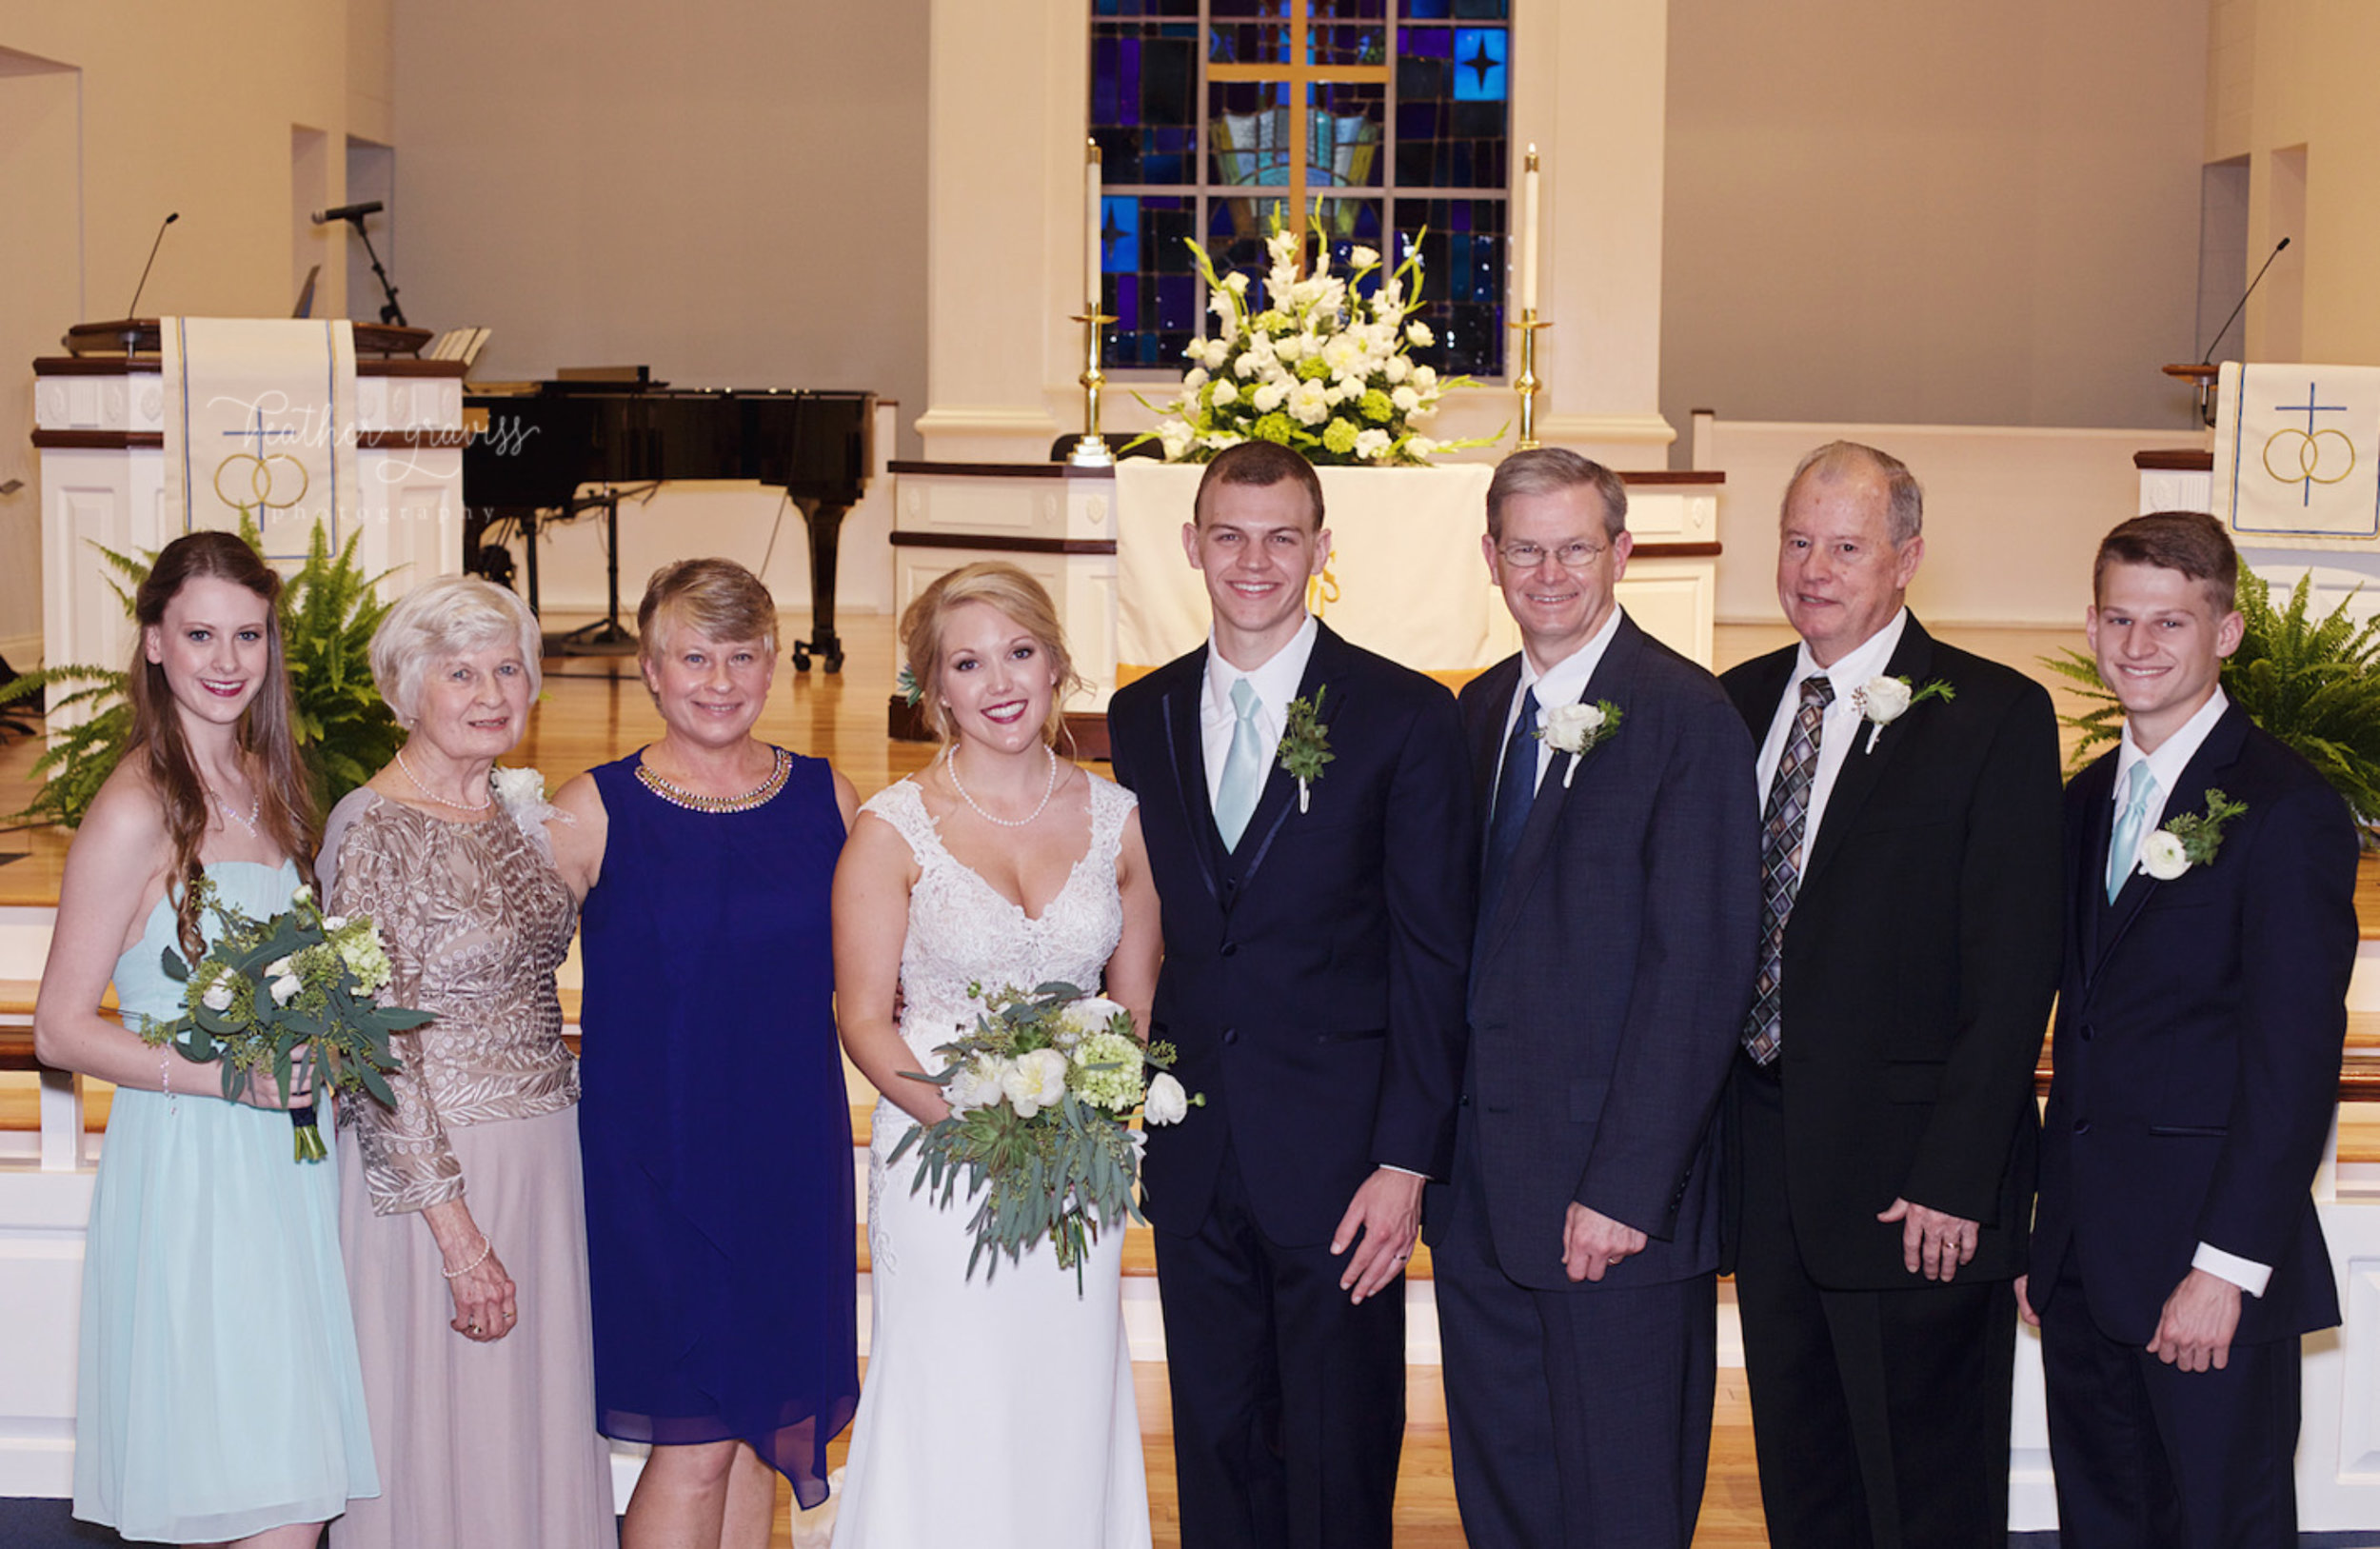 nashville middle tn wedding 106.jpg